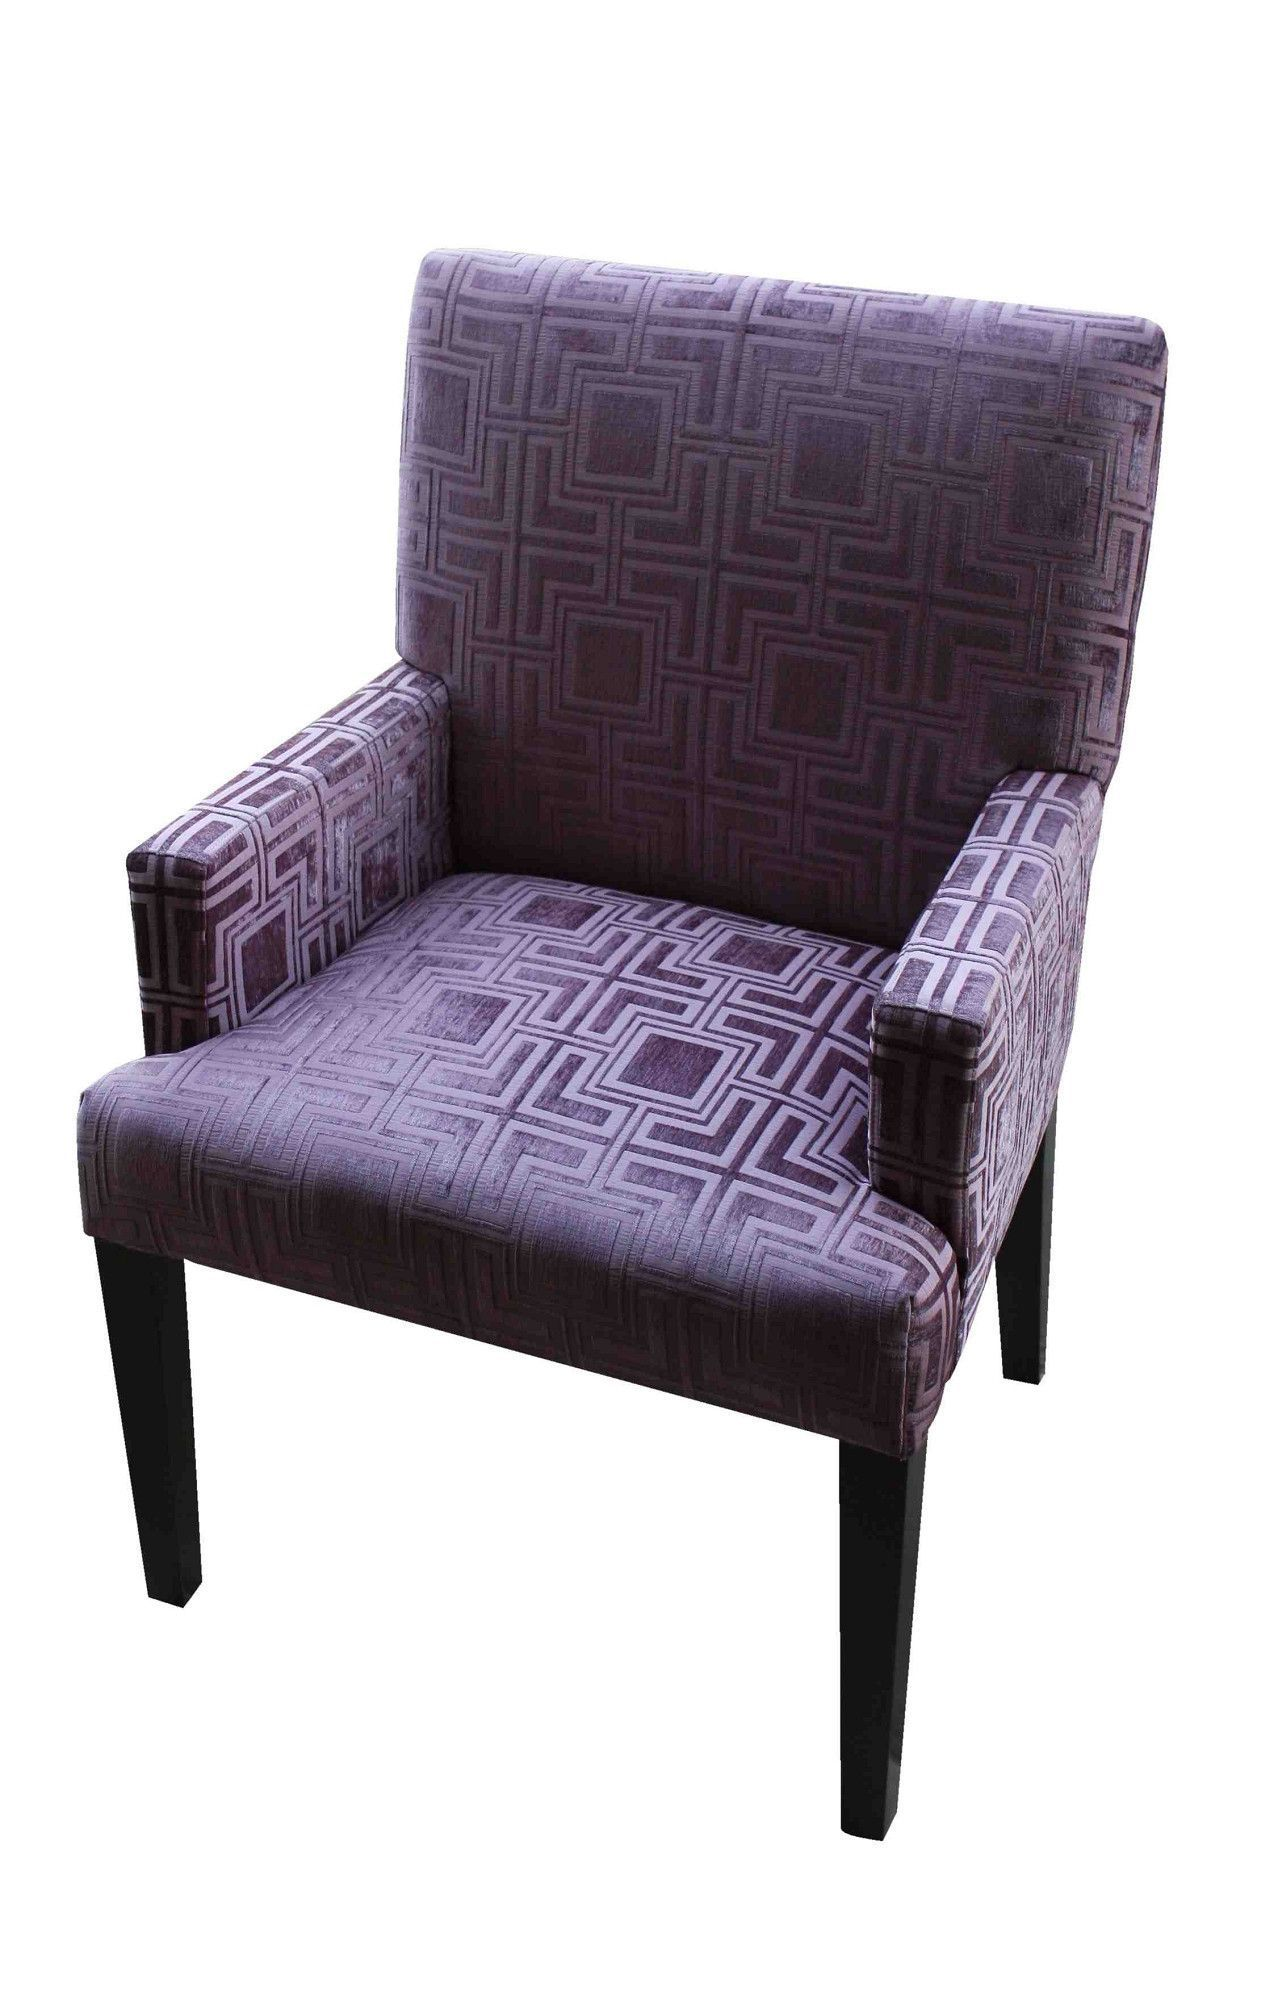 Purple Upholstered Dining Chairs Stackable Resin Patio Madera Chair Chairsmadera In